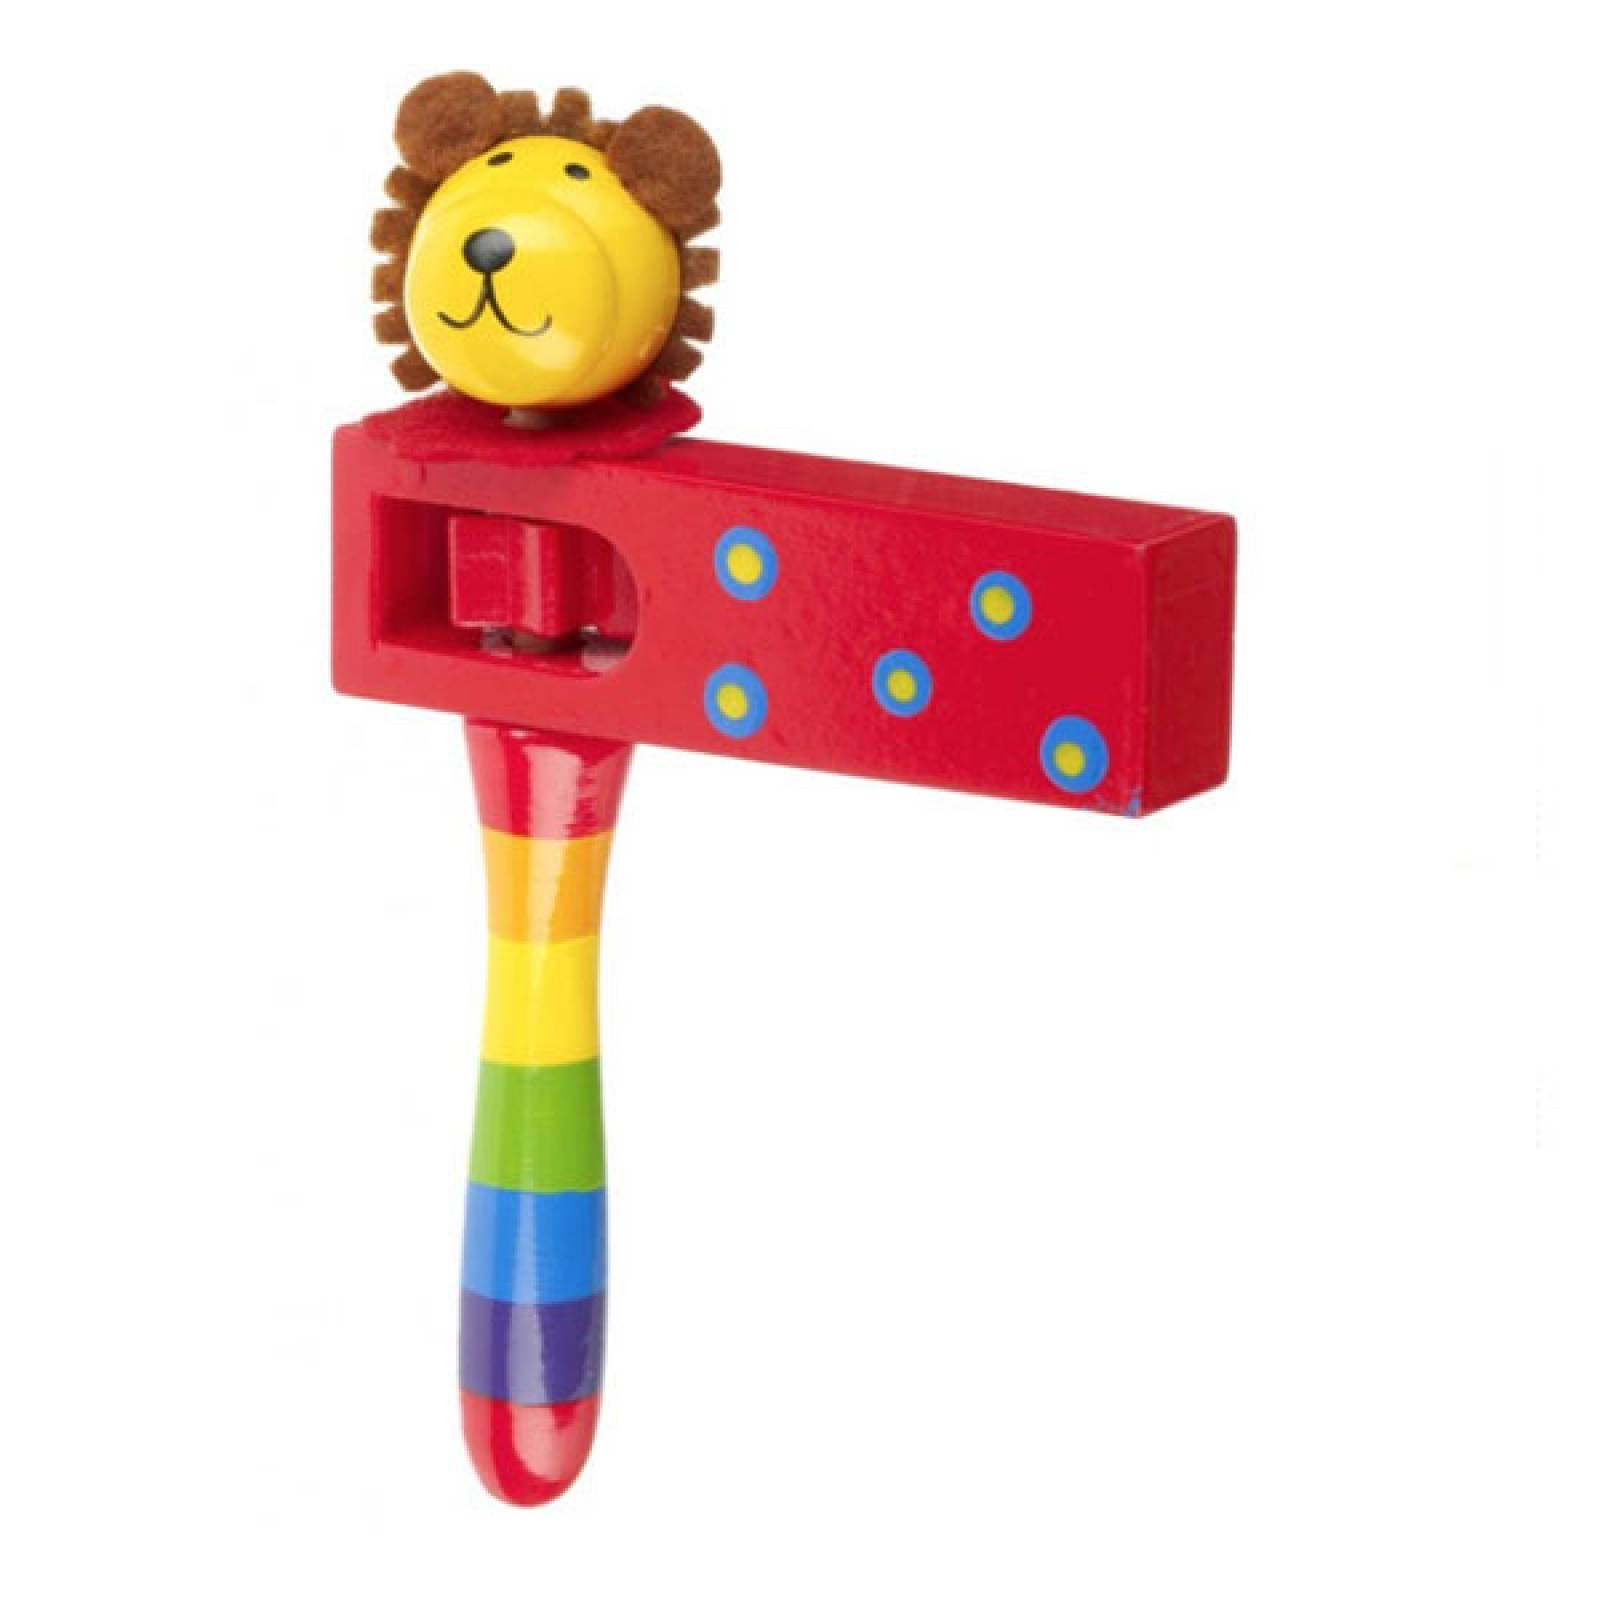 Lion - Wooden Painted Turning Rattle Clacker 3+